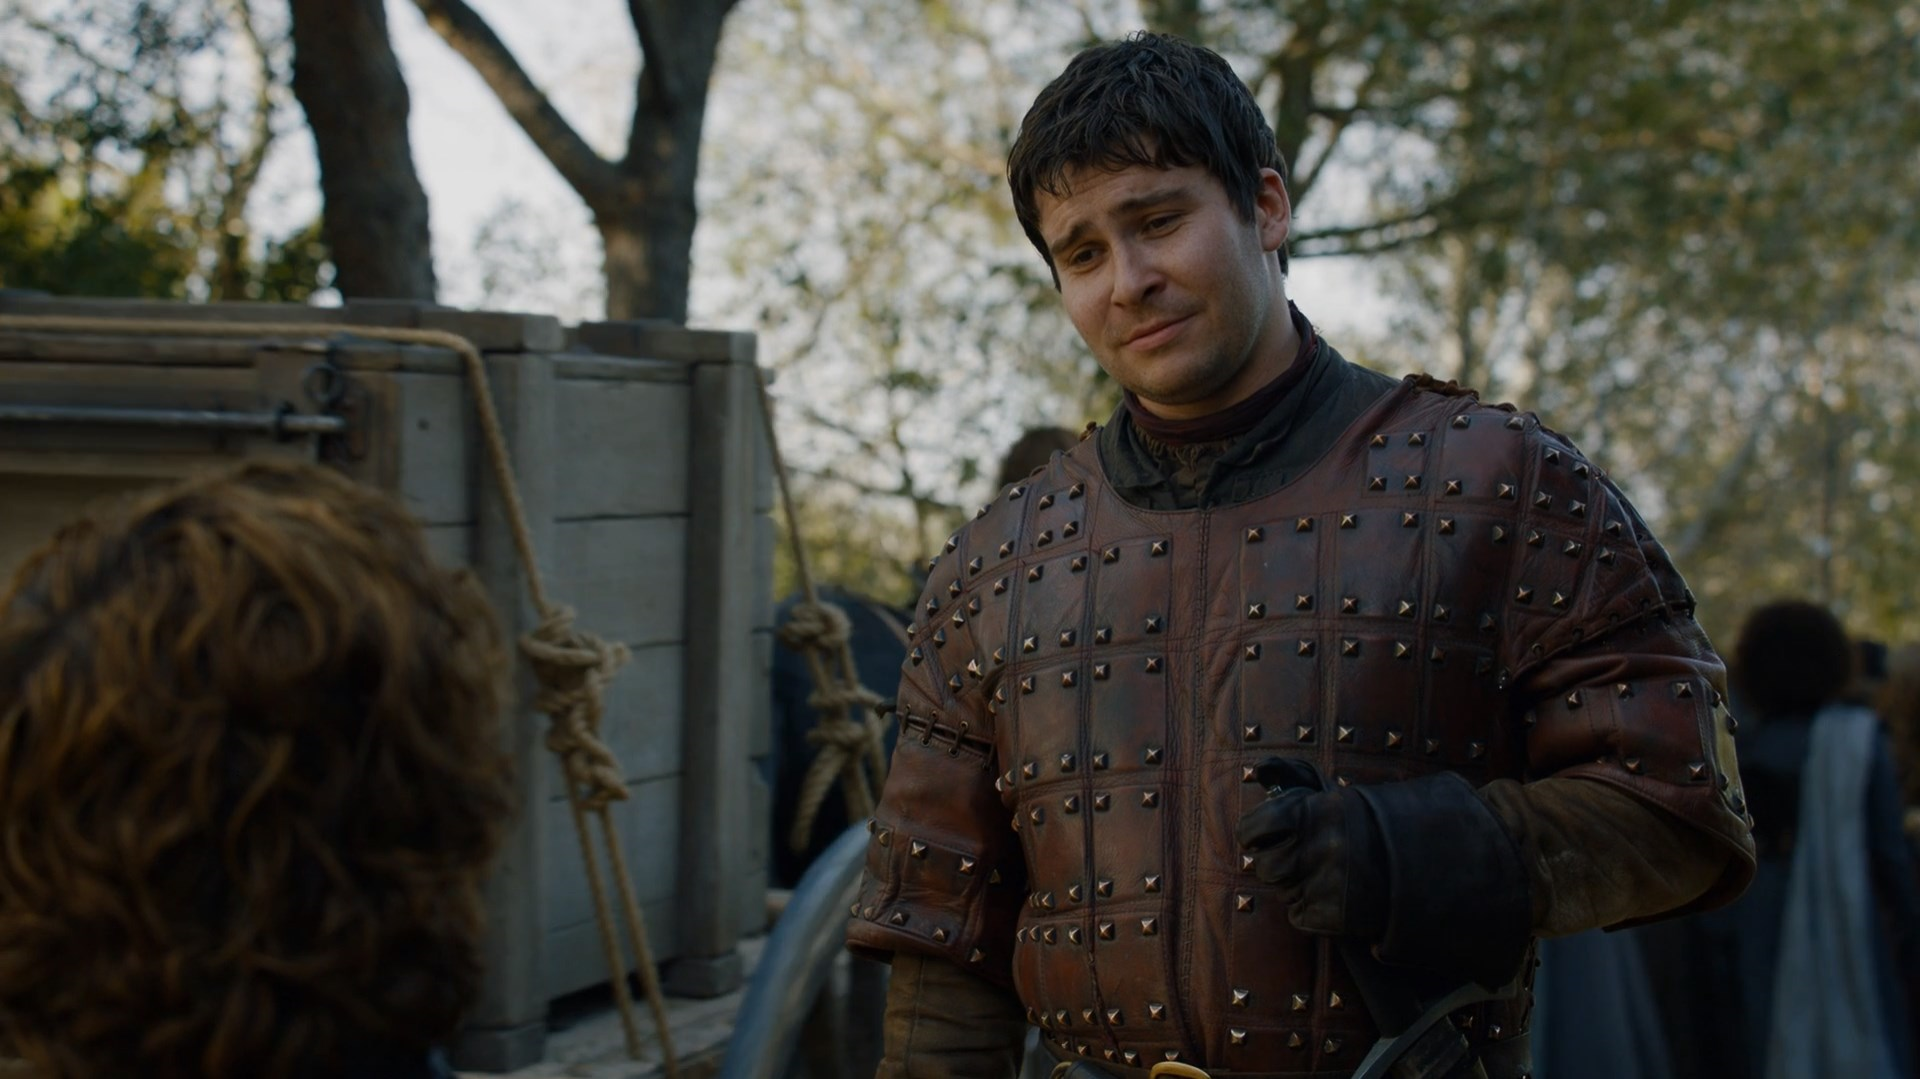 Game of Thrones character Podrick Payne.